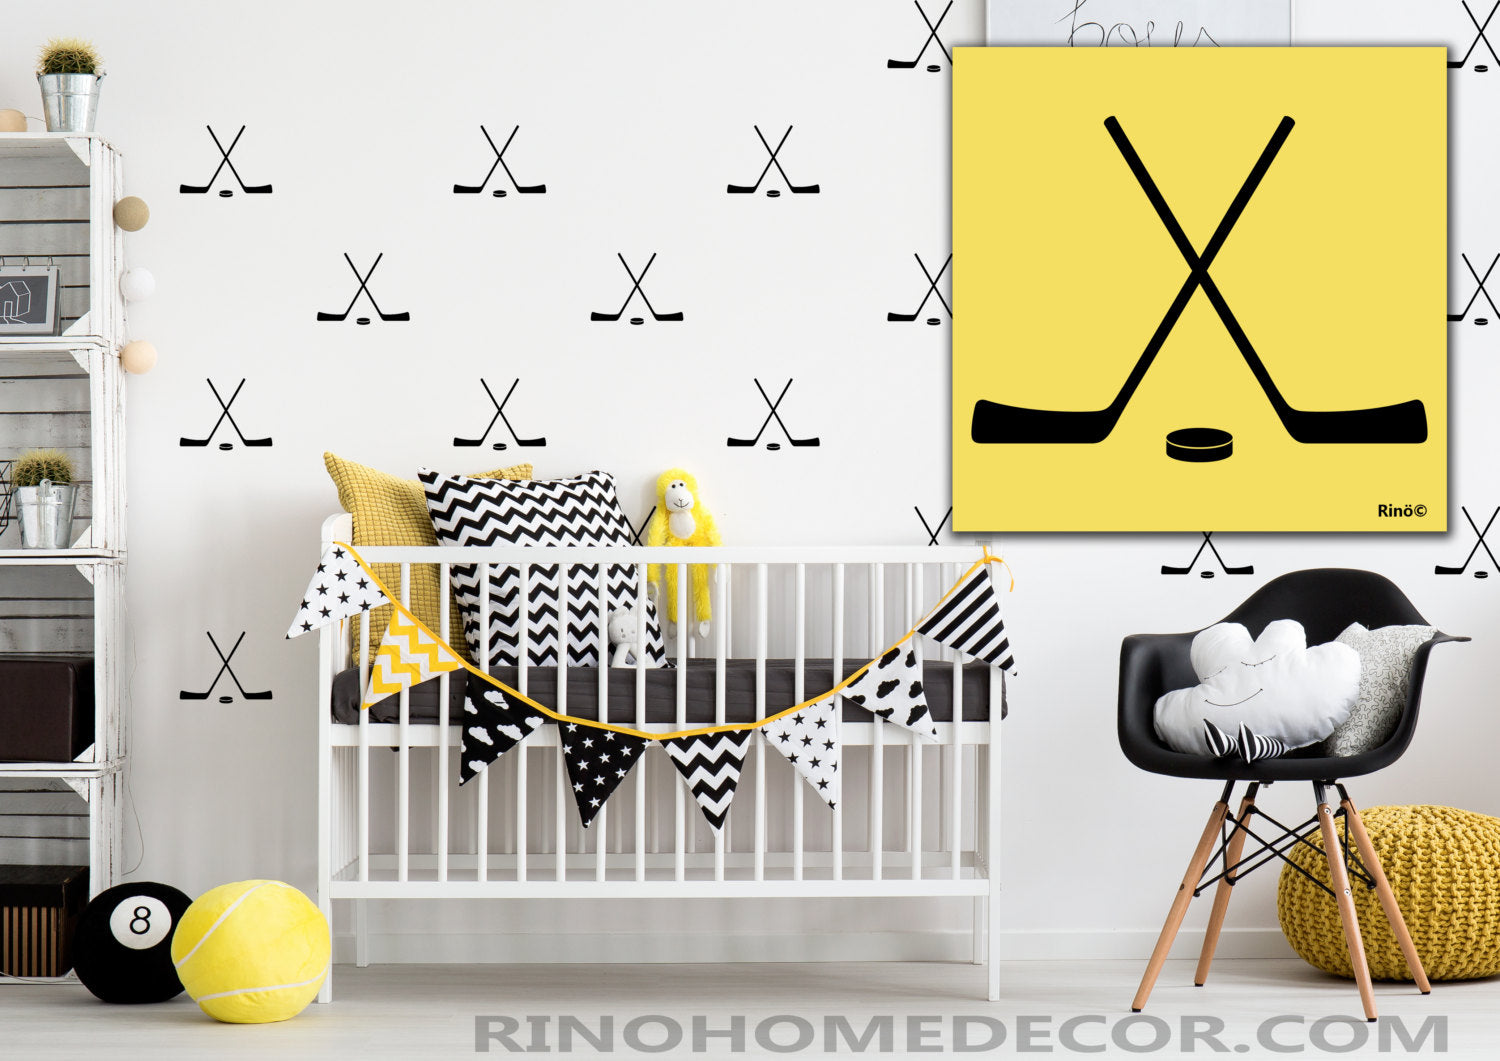 Hockey cross sticks pattern Vinyl Wall decal (Pack of 20) boy bedroom sticker wall art - wall paper effect - hockey puck decals